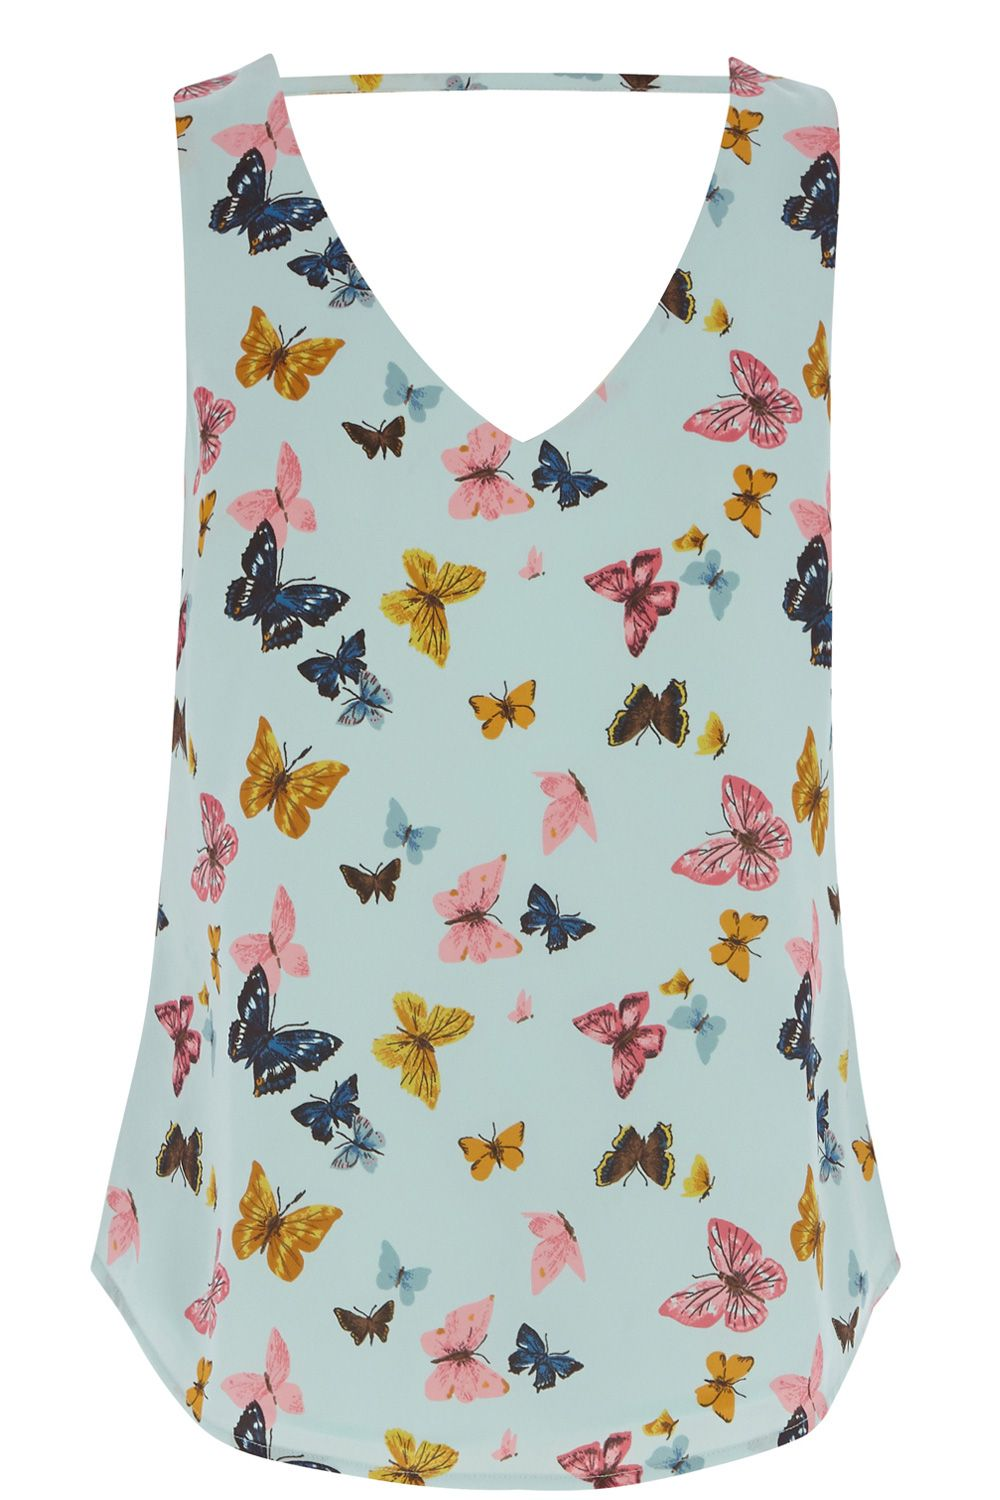 Butterfly v front and back vest